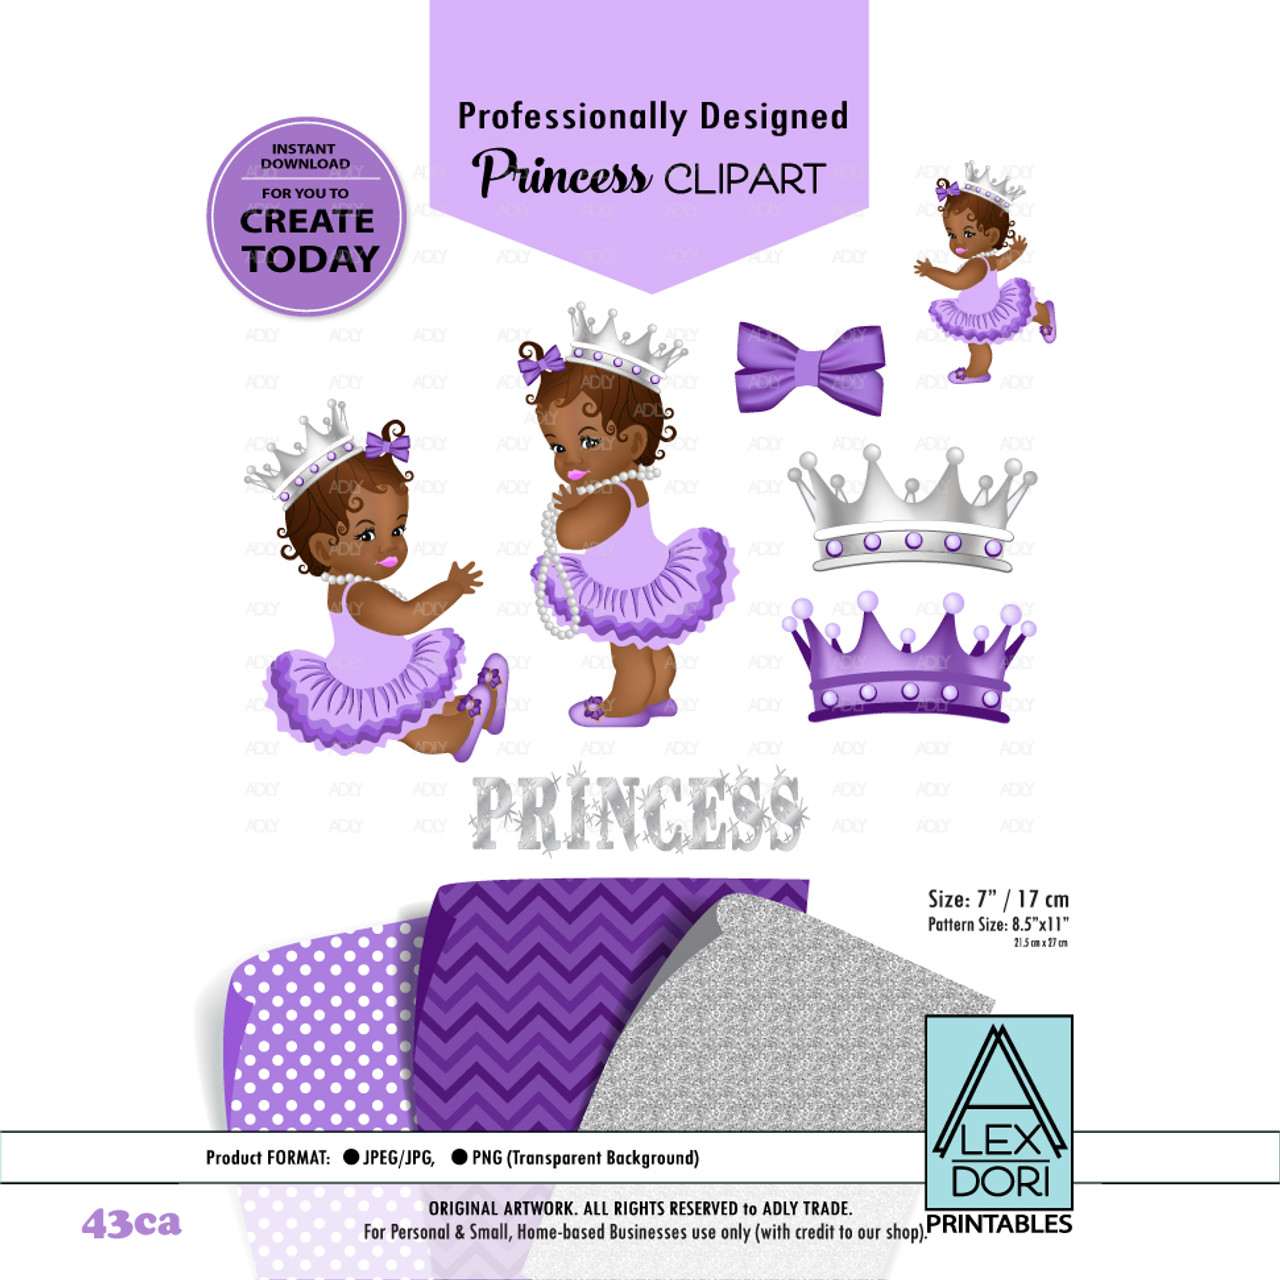 medium resolution of princess african american baby digital clipart purple and gray baby girl clipart crown clipart baby shower adly invitations and digital party designs